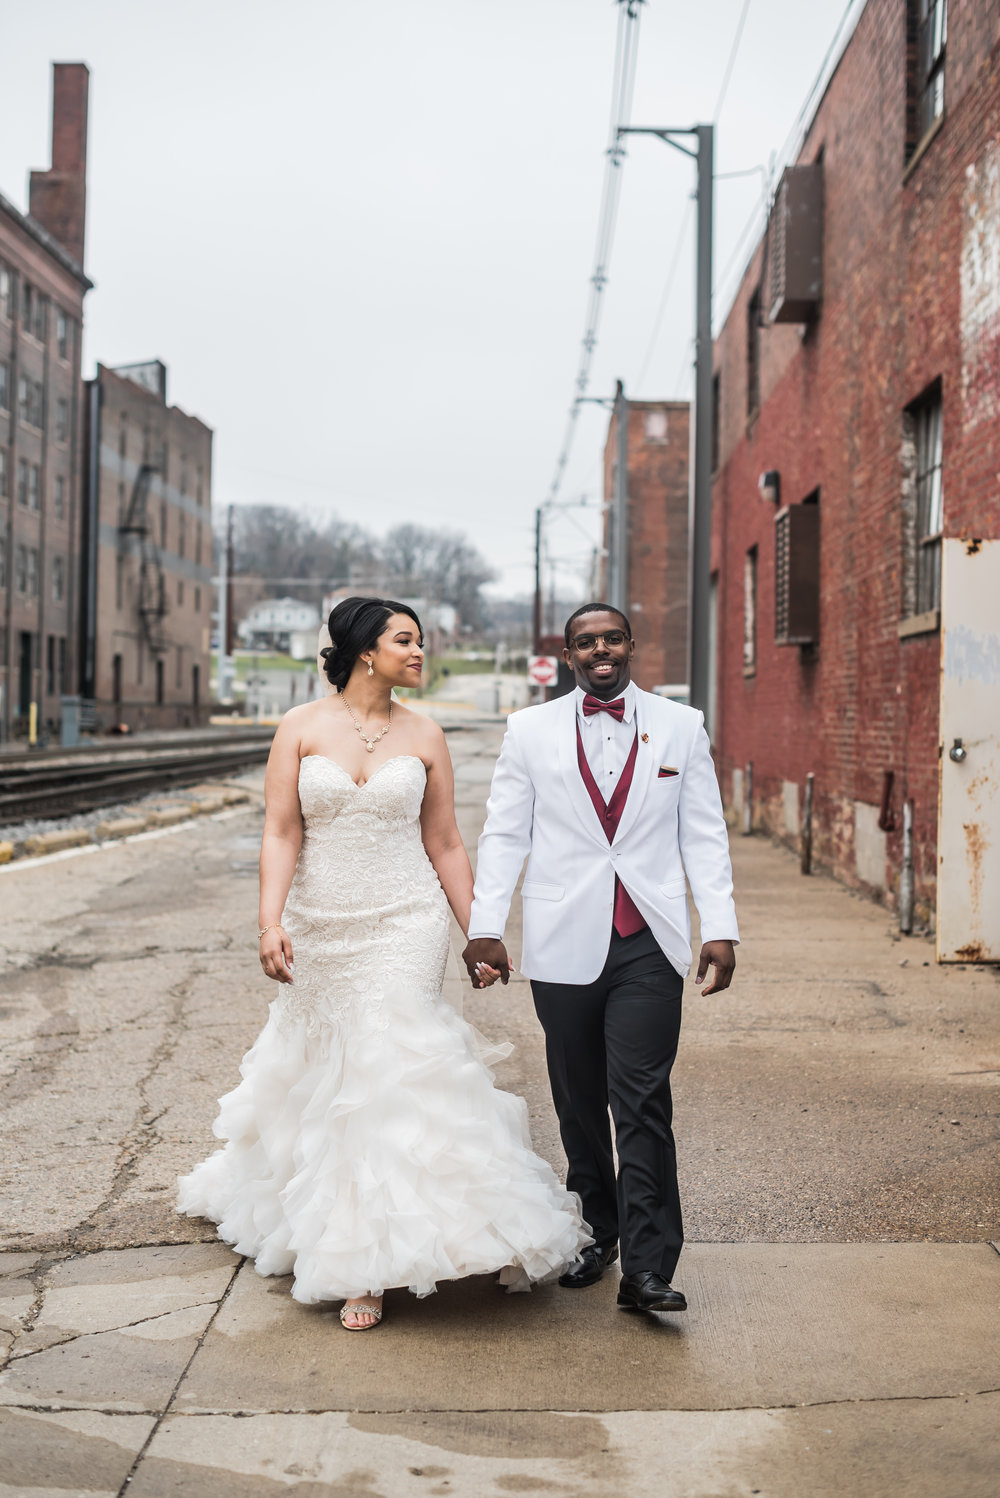 Burlington Iowa Wedding Midwest Photographer Melissa Cervantes _ Chantelle and Isaiah 243a.jpg